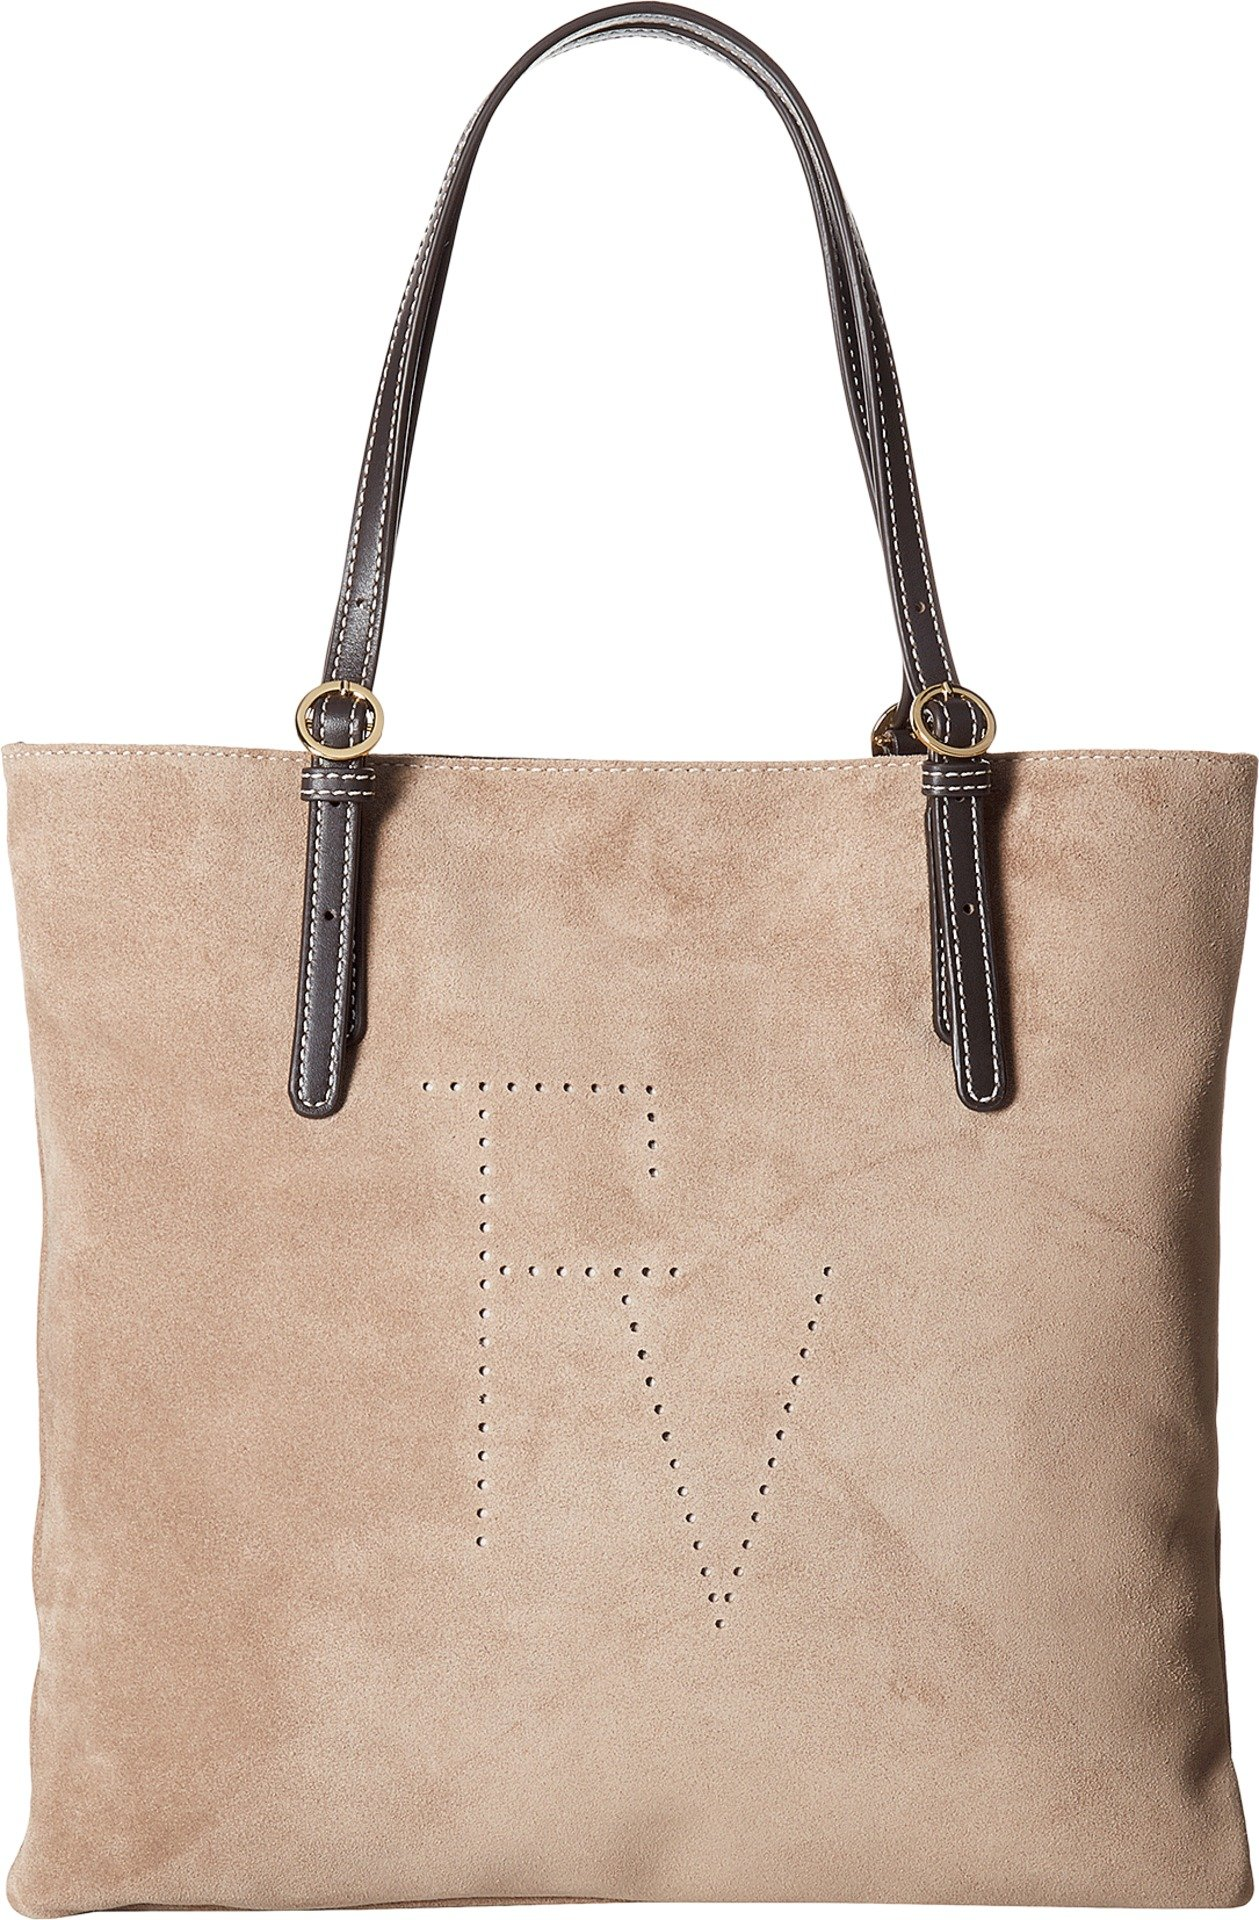 Frances Valentine Women's Suede w/ Calf Trim Top-Handle Flat Tote Stone One Size